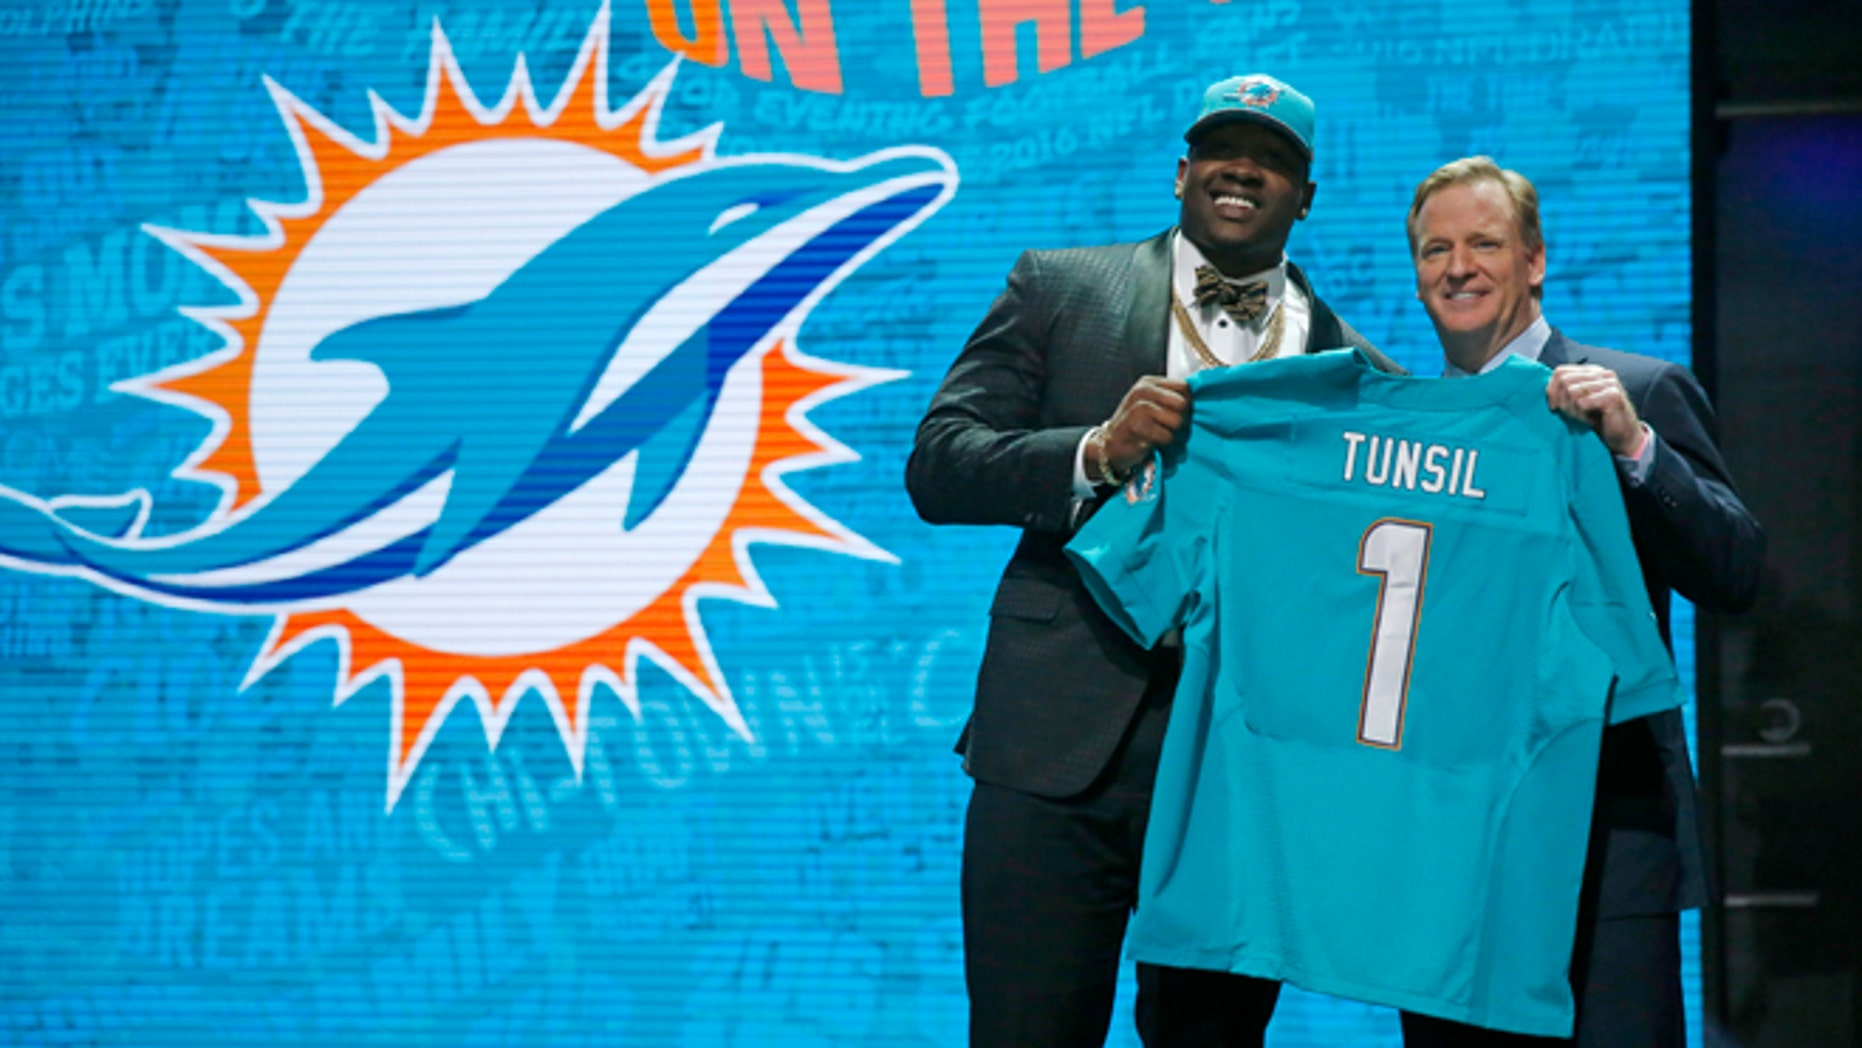 Mississippis Laremy Tunsil poses for photos with NFL commissioner Roger Goodell after being selected by the Miami Dolphins as the 13th pick in the first round of the 2016 NFL football draft, Thursday, April 28, 2016, in Chicago. (AP Photo/Charles Rex Arbogast)